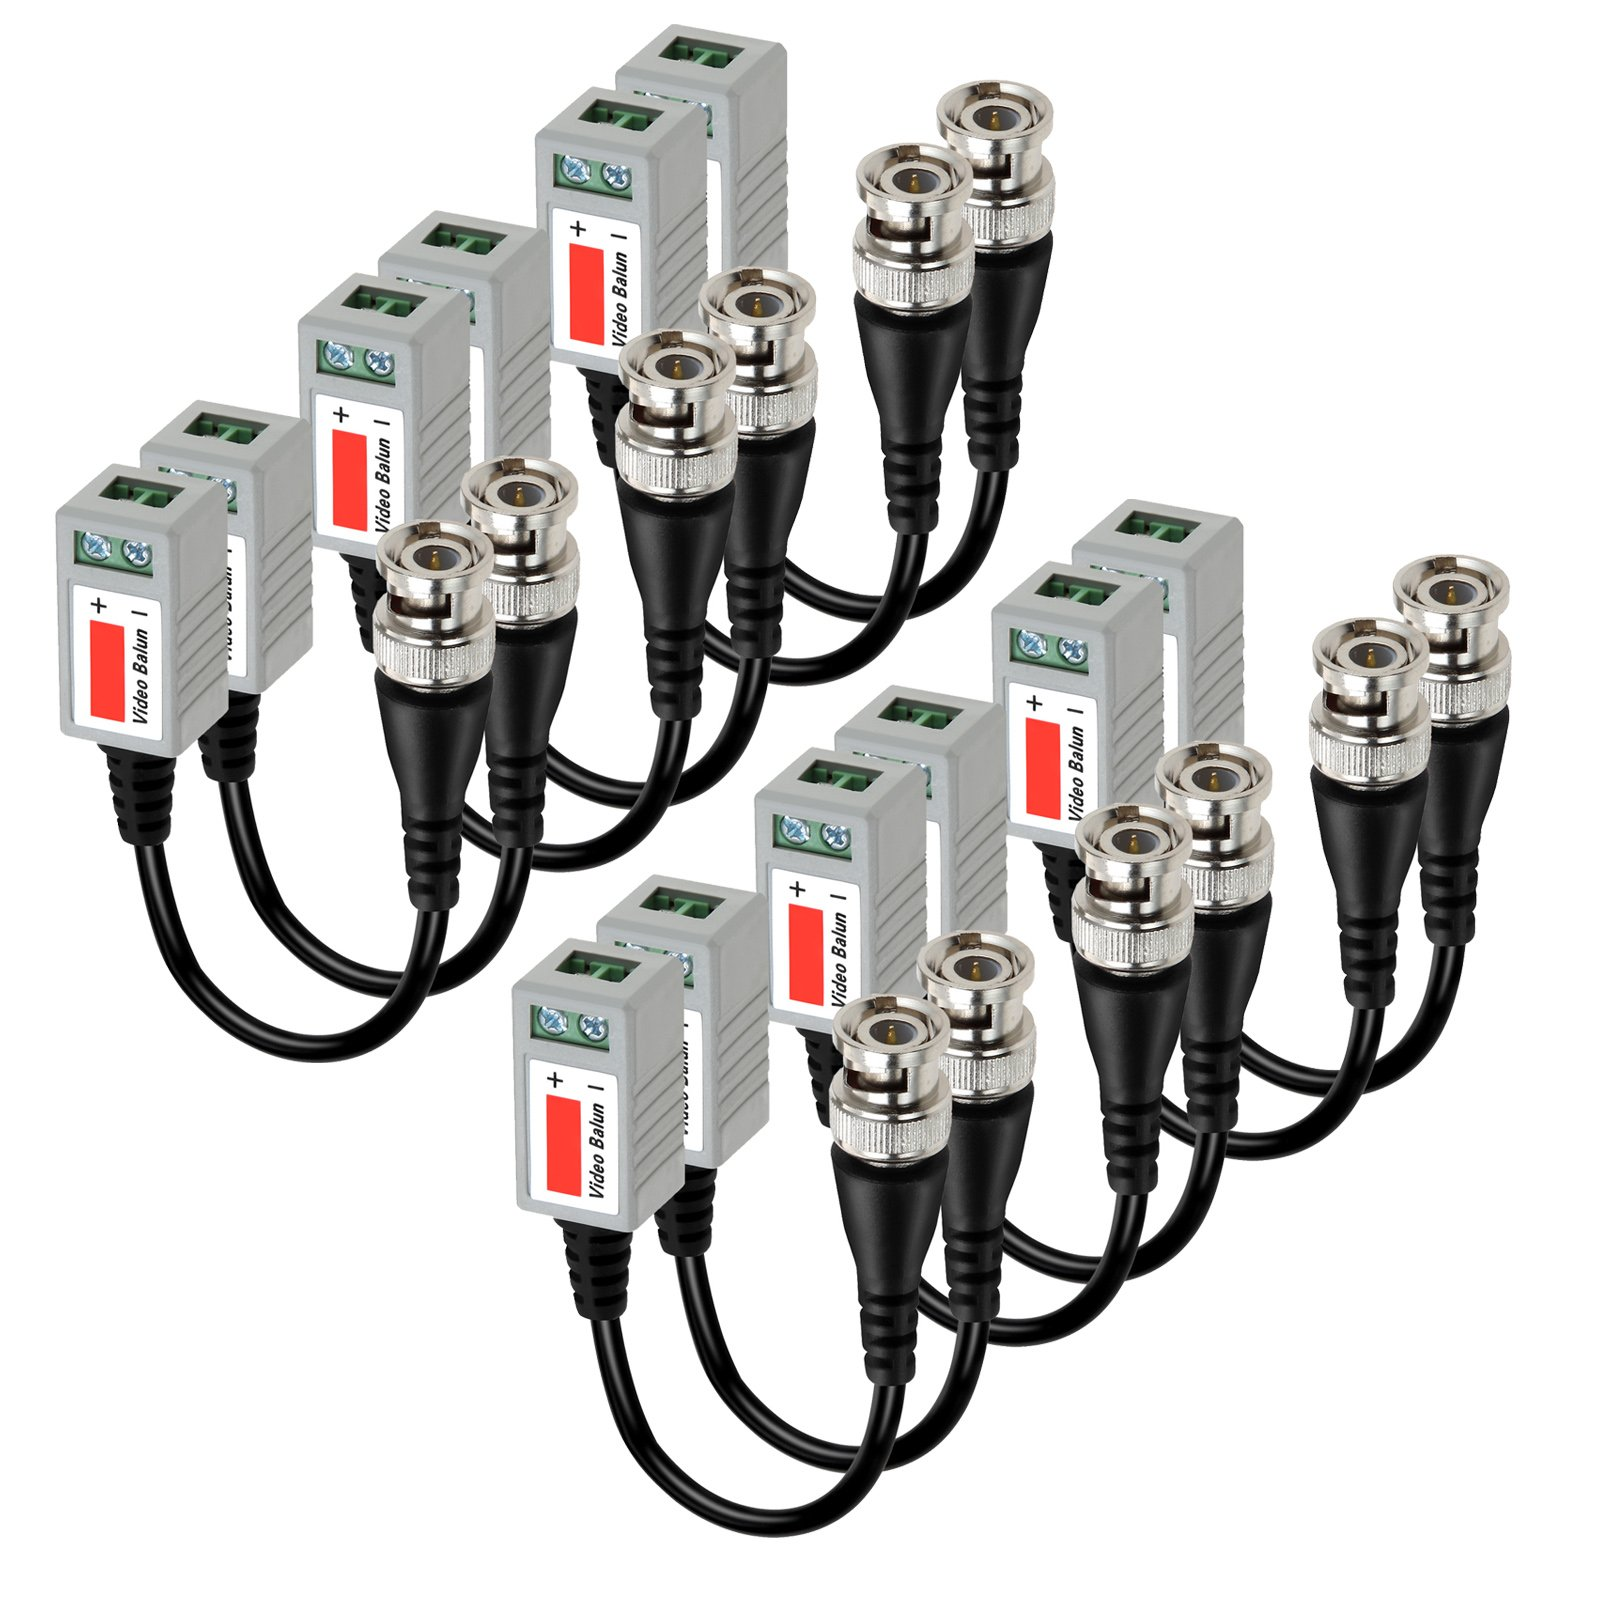 VIMVIP 6 Pairs (12 Pcs) Mini CCTV BNC Video Balun Transceiver Cable by VIMVIP